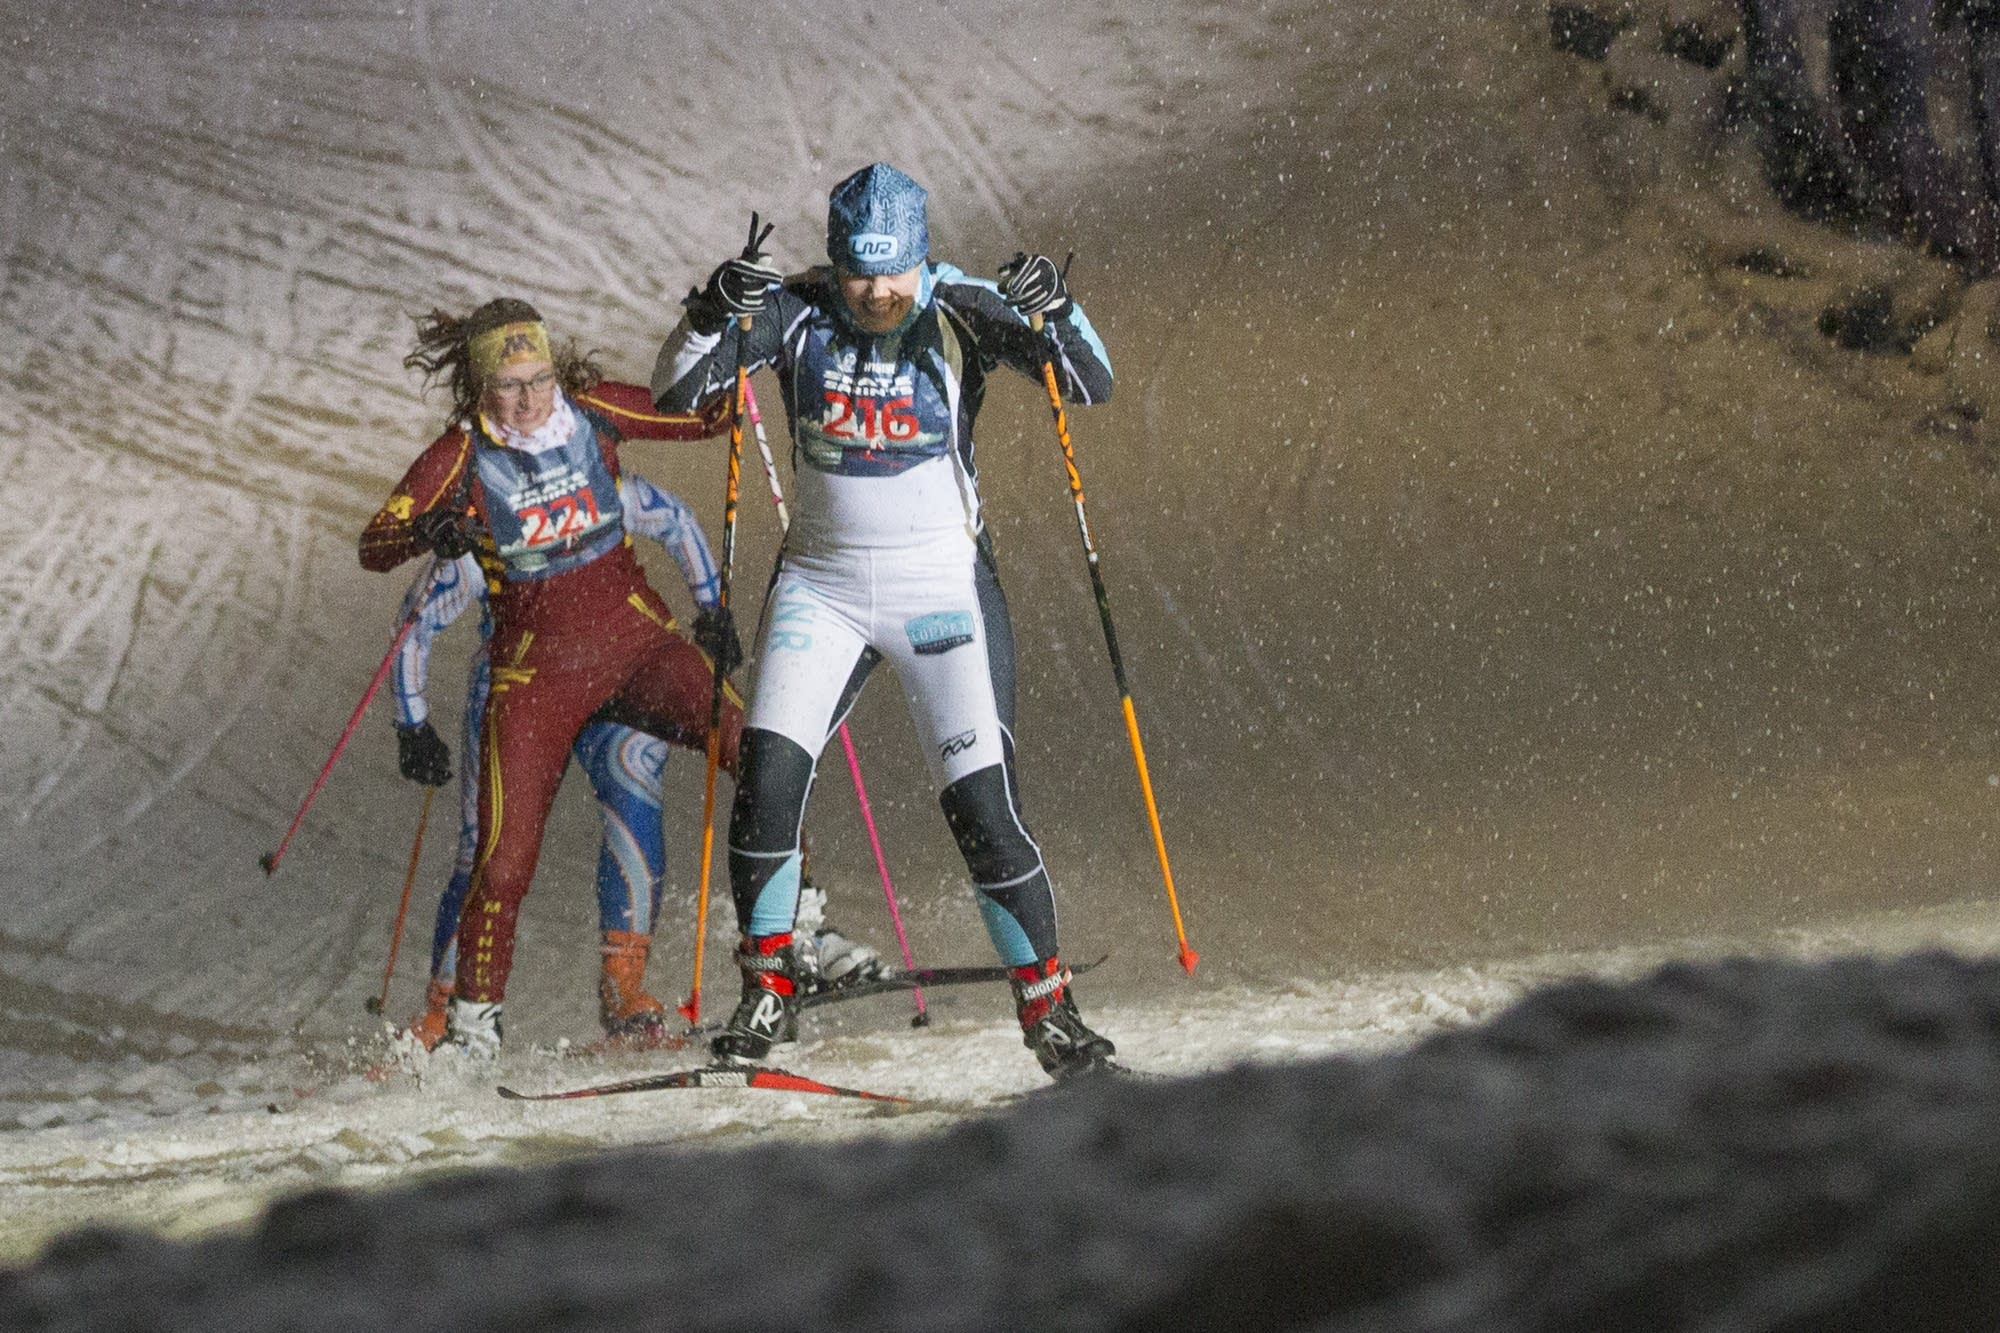 Skiers Nicole Harvey and Laura Cattaneo climb the steep hill.